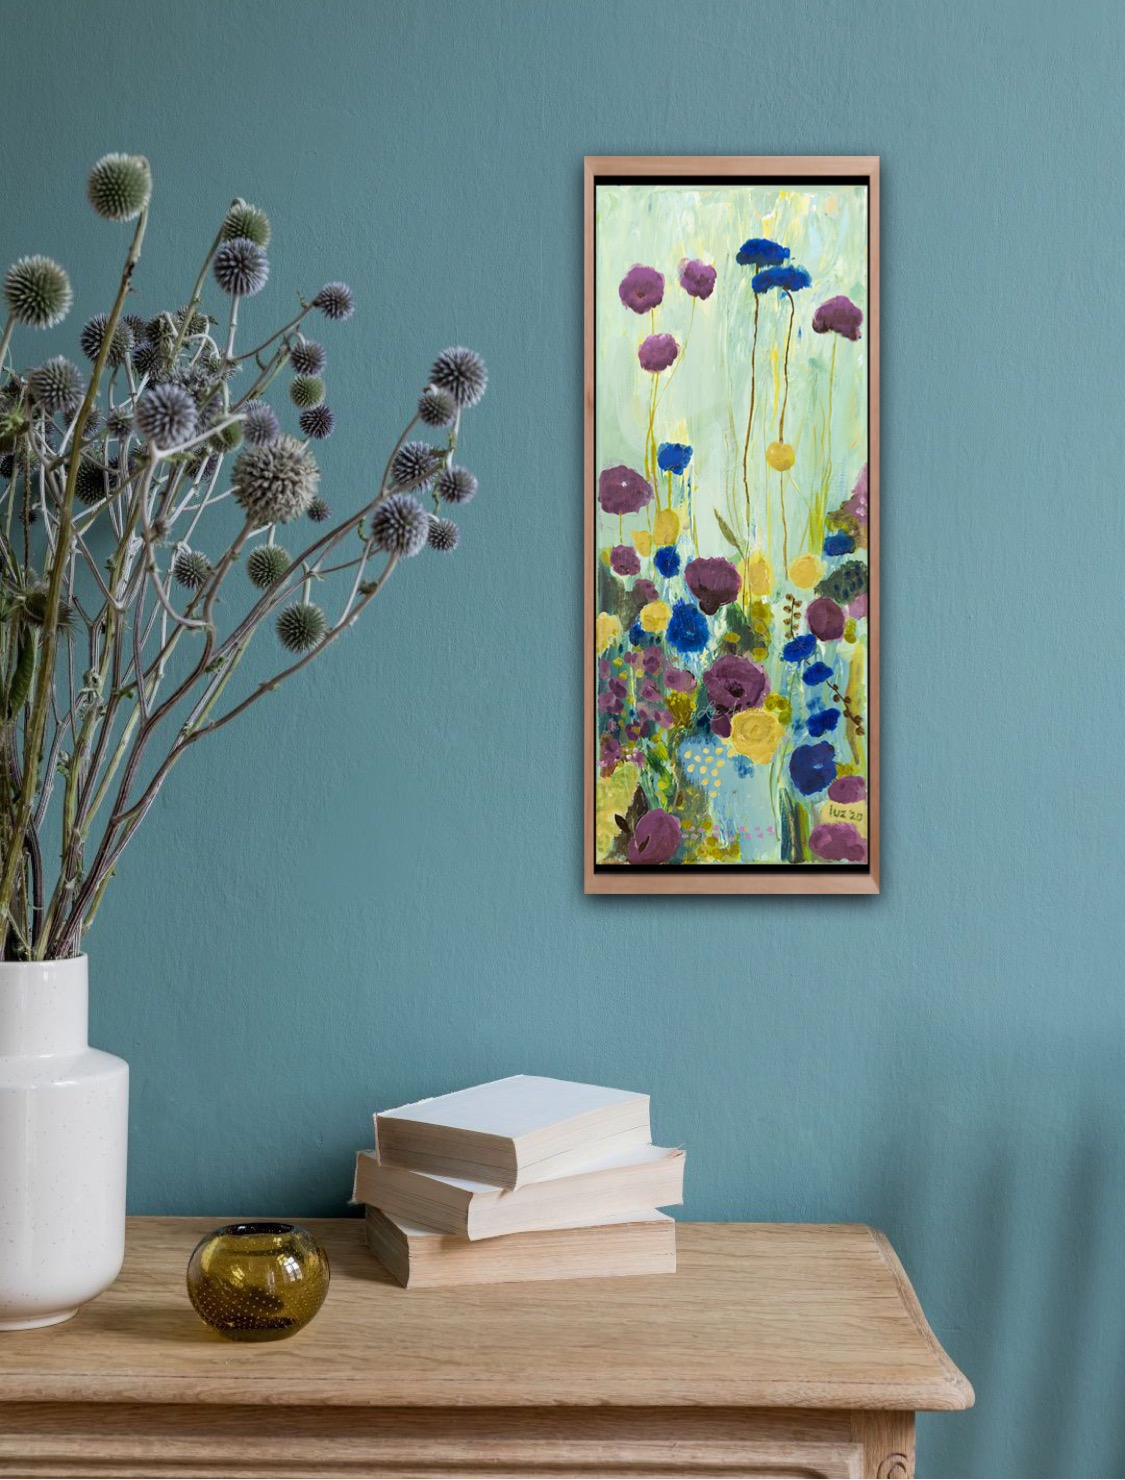 Blue and purple flower field - by Luz Artworks Marloes Bloedjes - on the wall